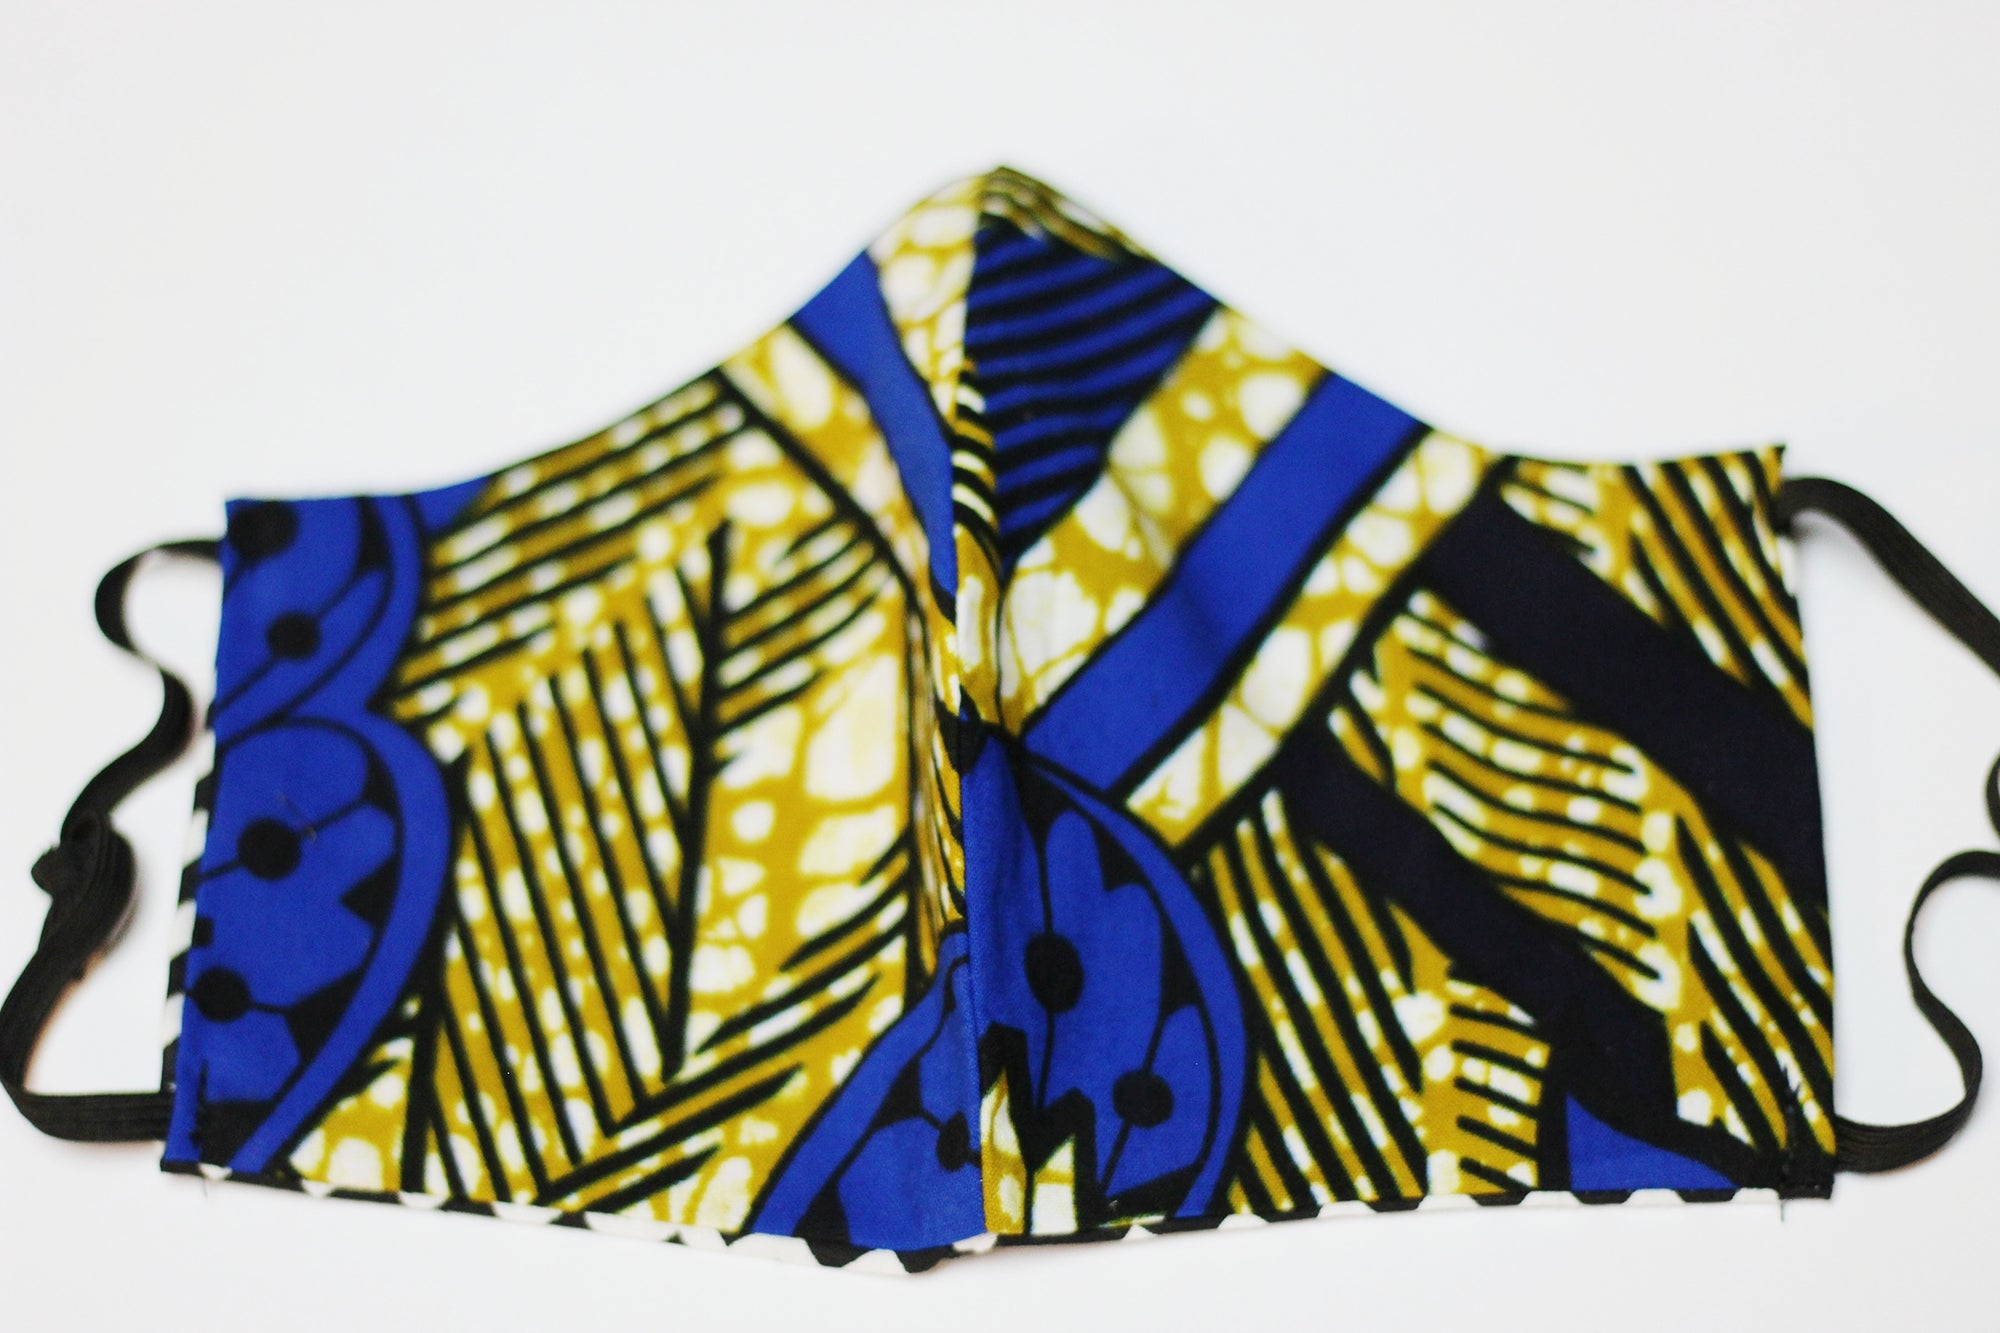 African Print Face Mask - Royal Blue /Gold/Black Tribal Print